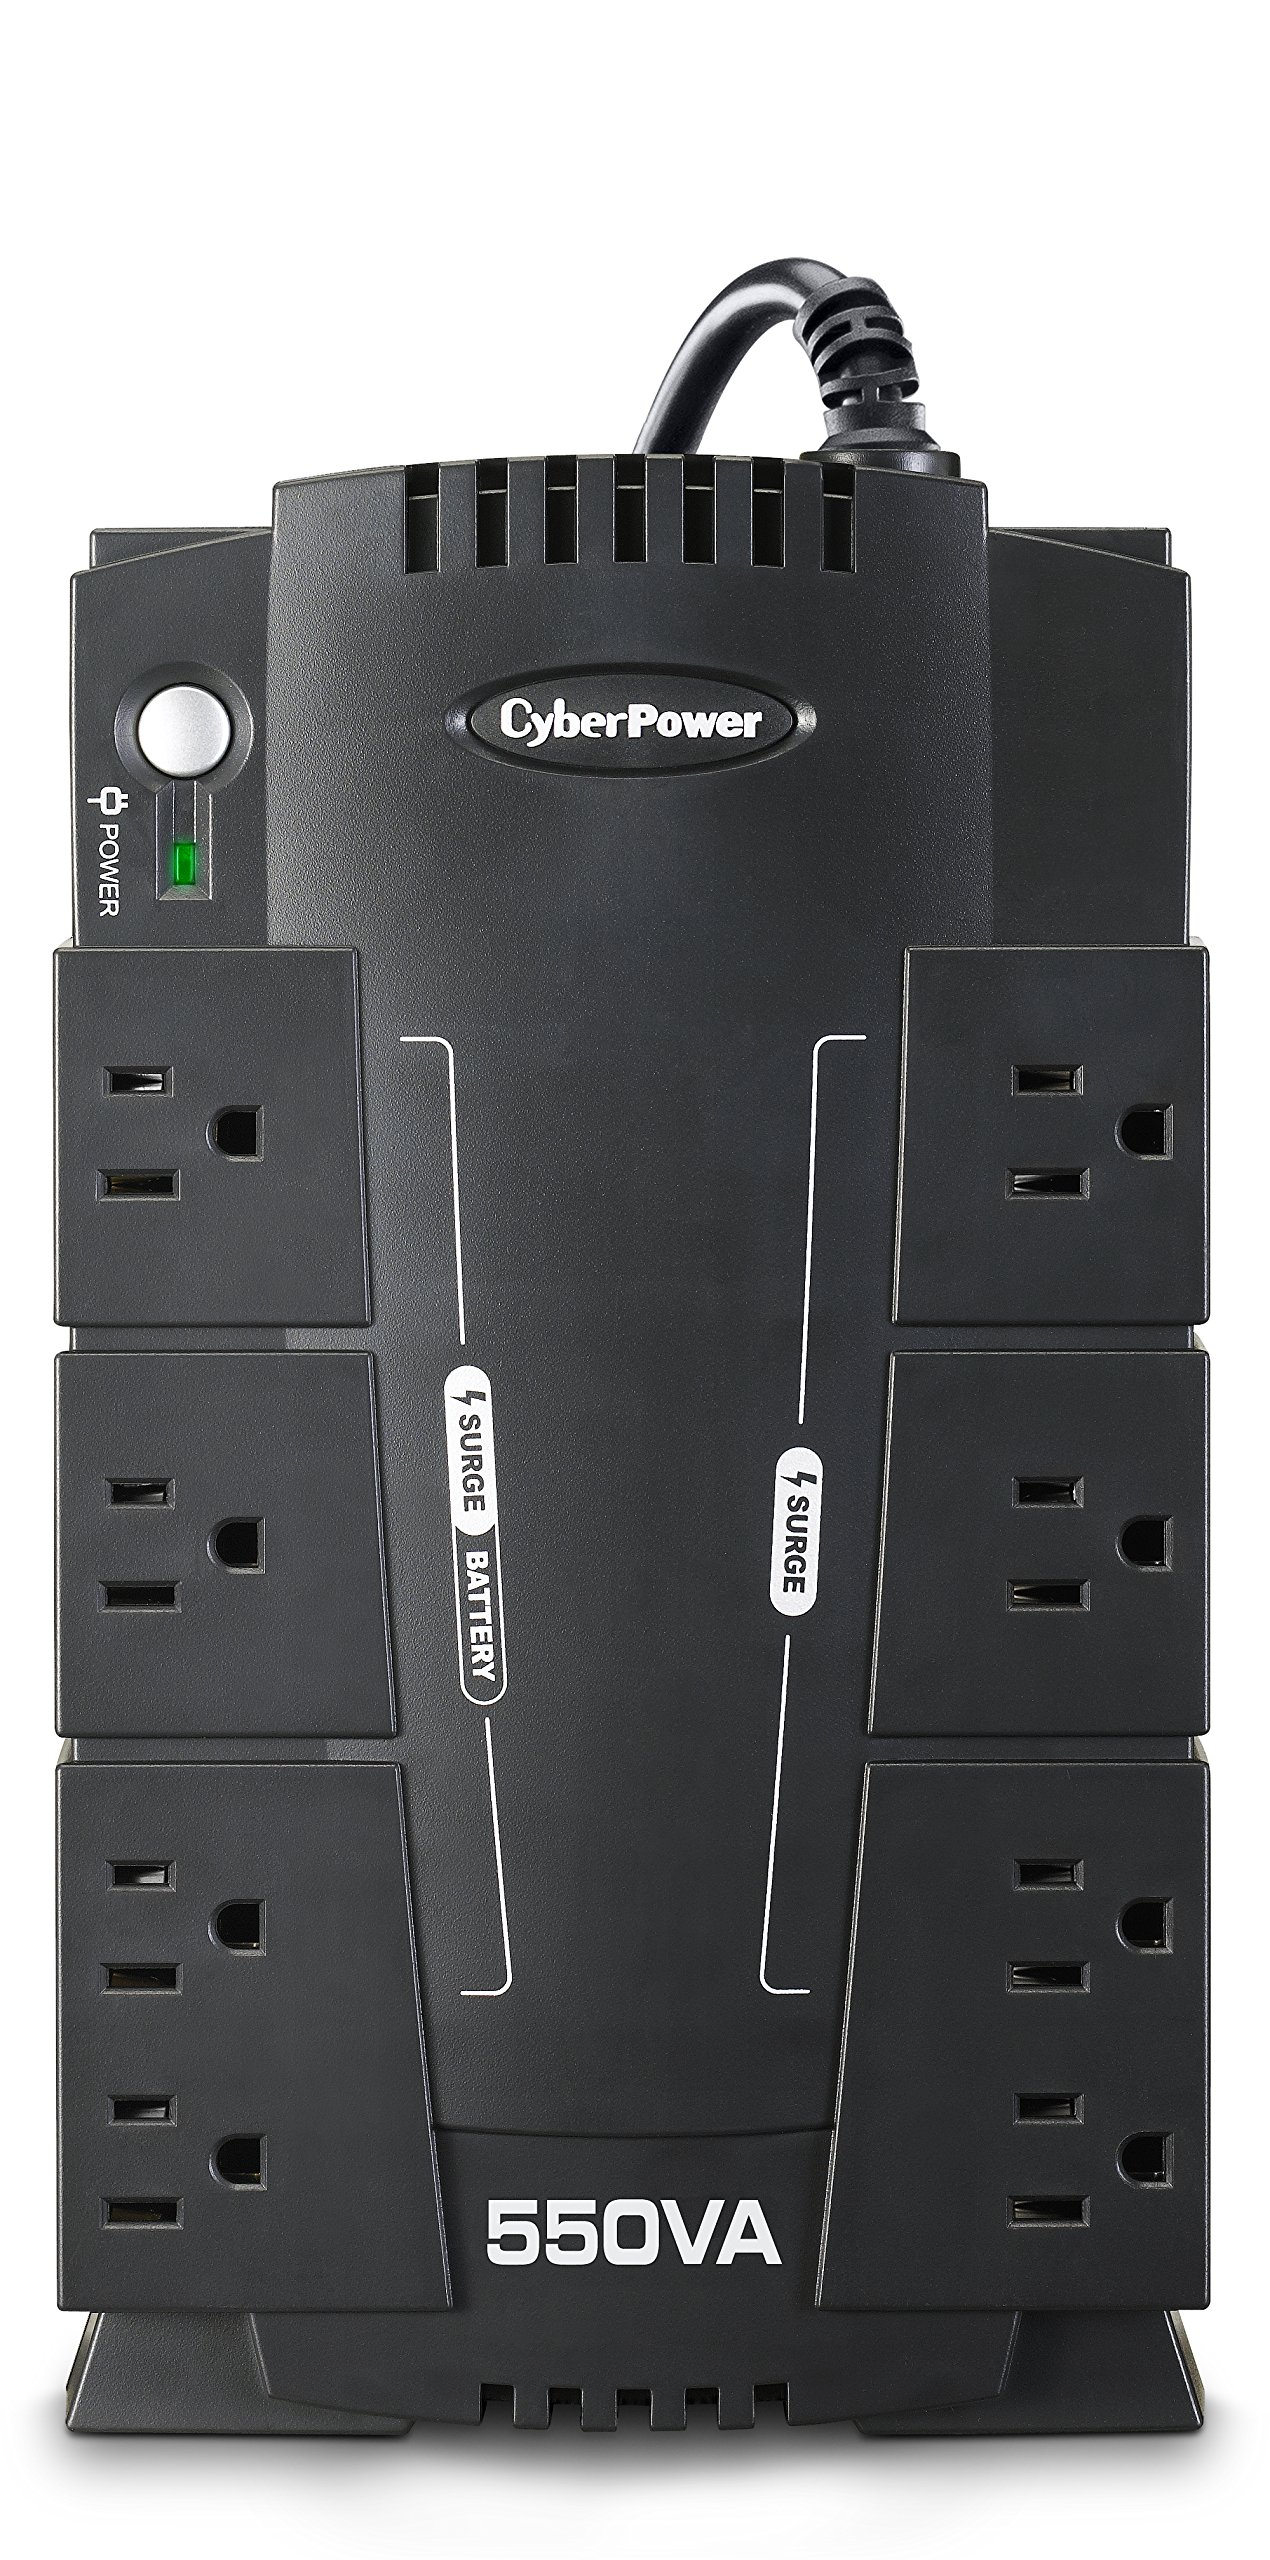 CyberPower CP550SLGTAA Standby UPS System, 550VA/330W, 8 Outlets, Compact, TAA Certified by CyberPower